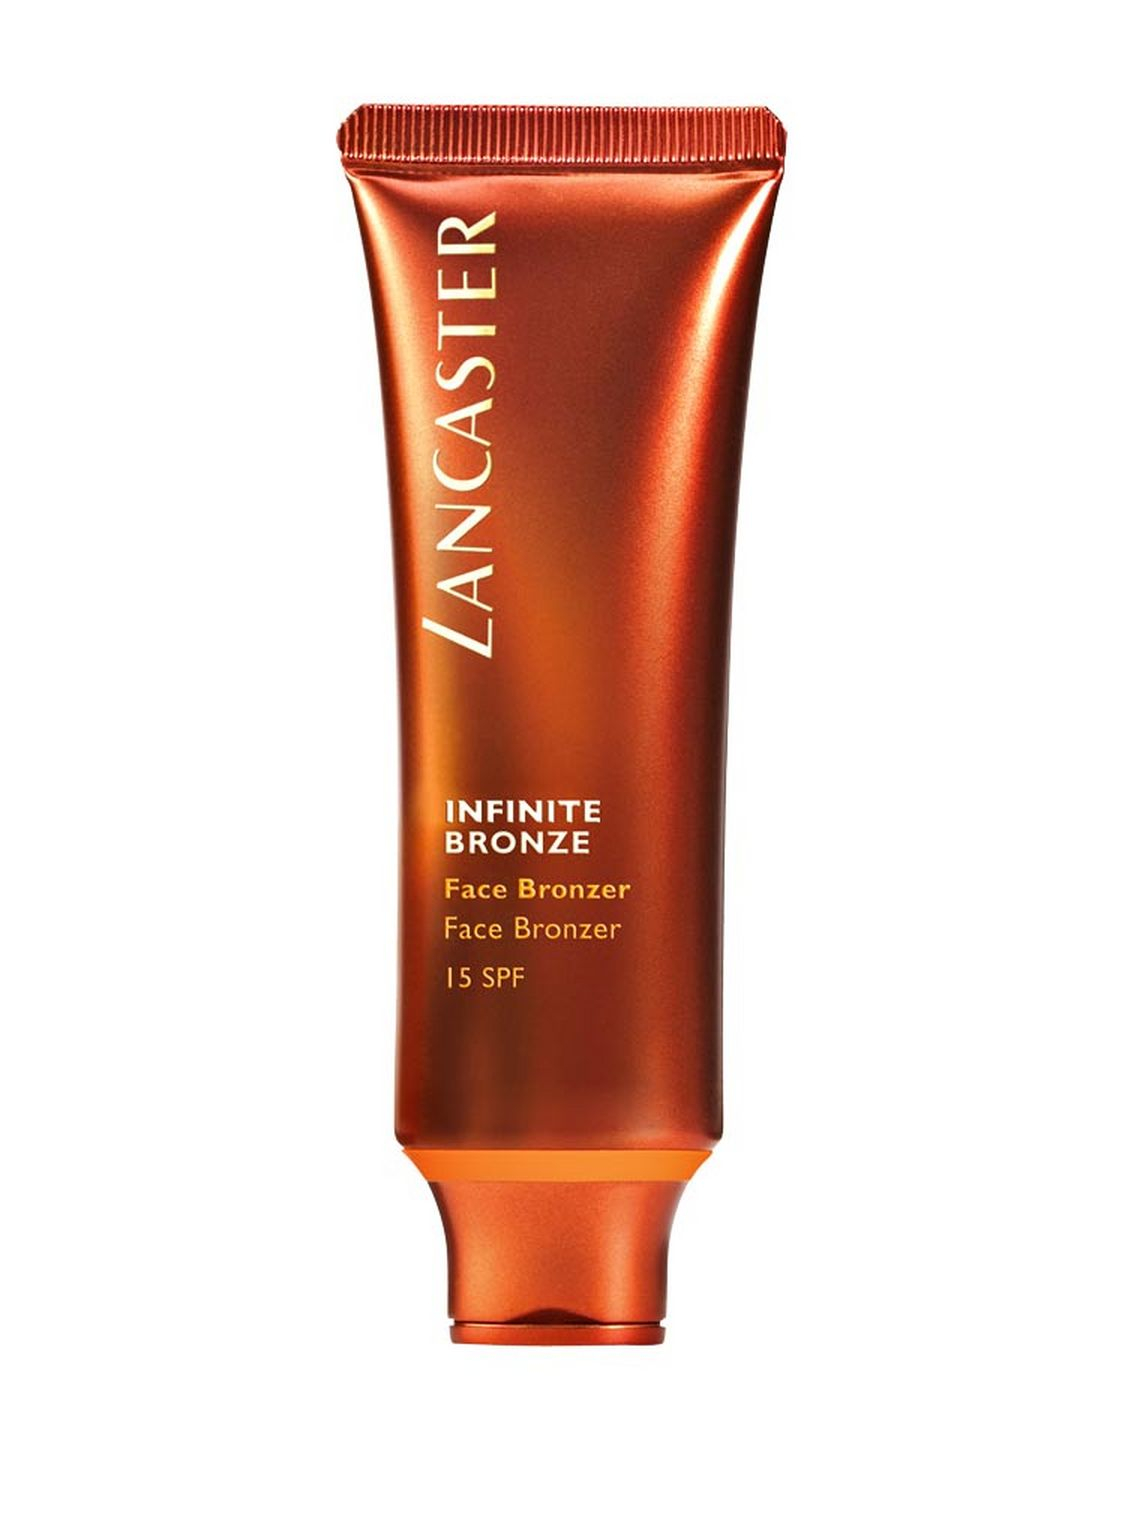 LANCASTER INFINITE BRONZE FACE BRONZER SPF 15 NATURAL